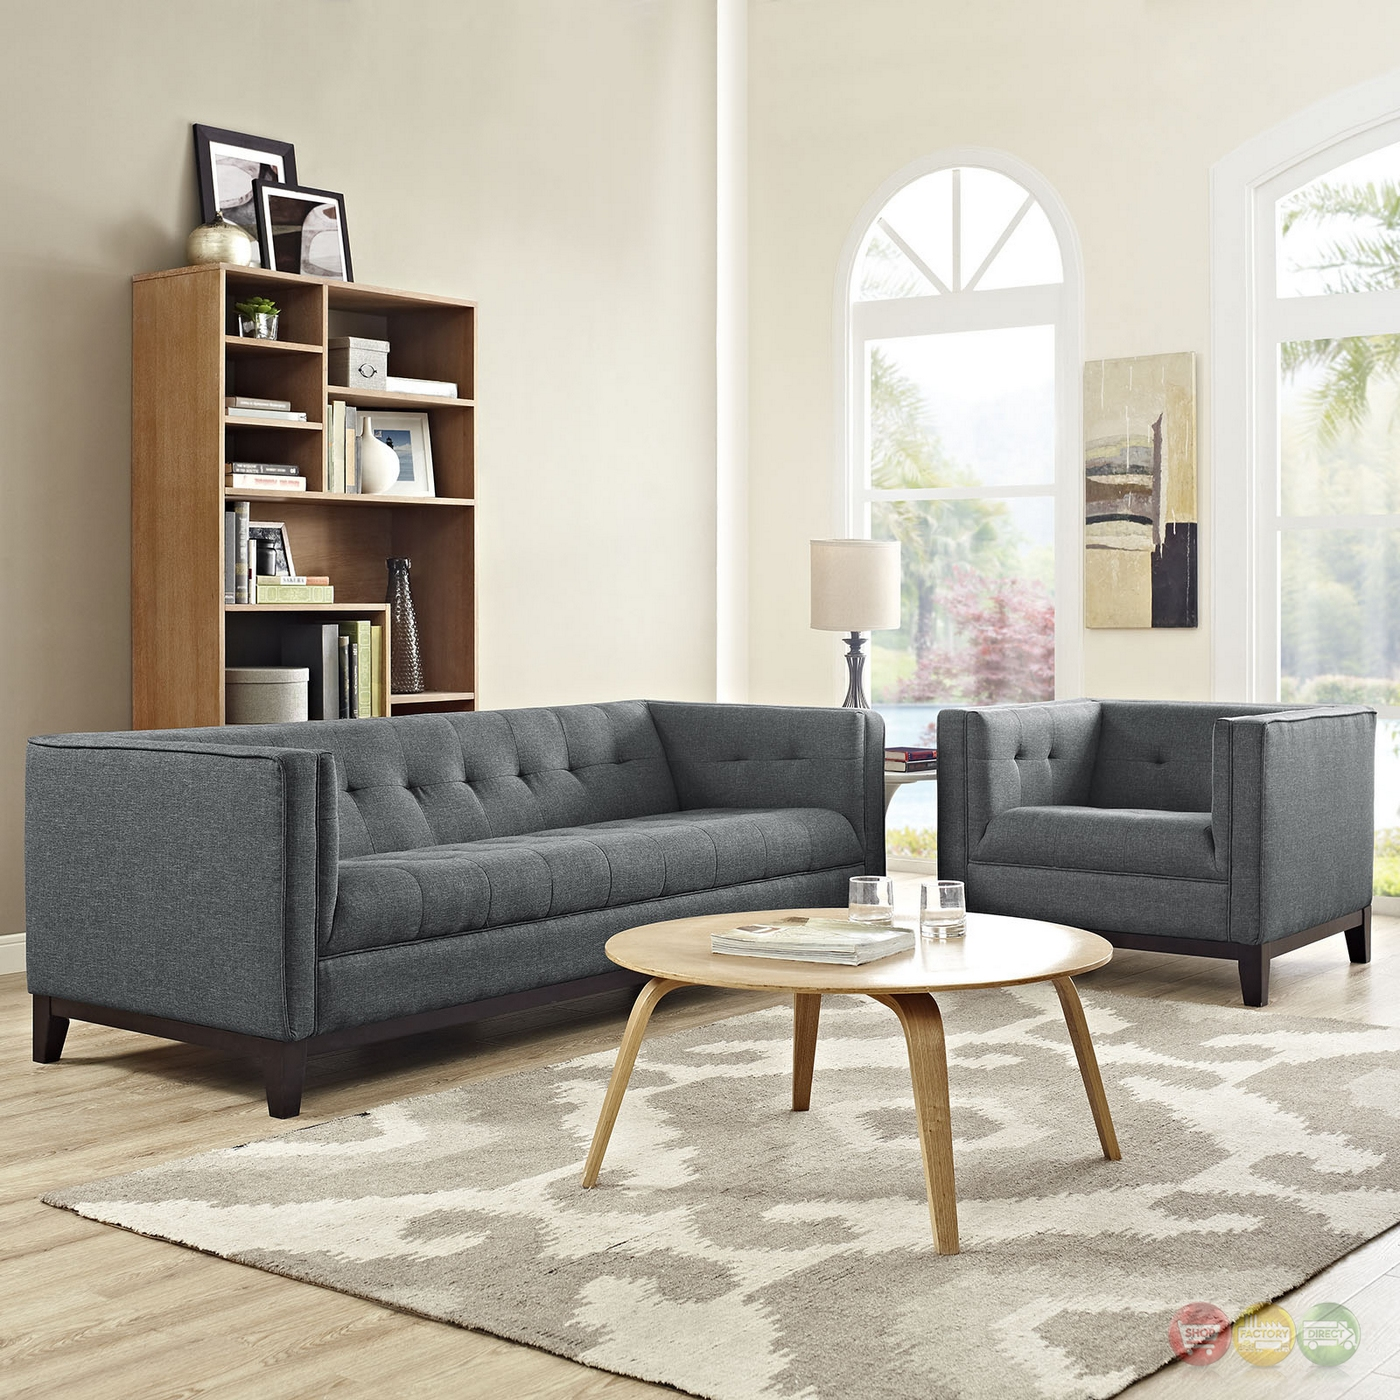 Serve Modern 2pc Upholstered Button Tufted Sofa Amp Armchair